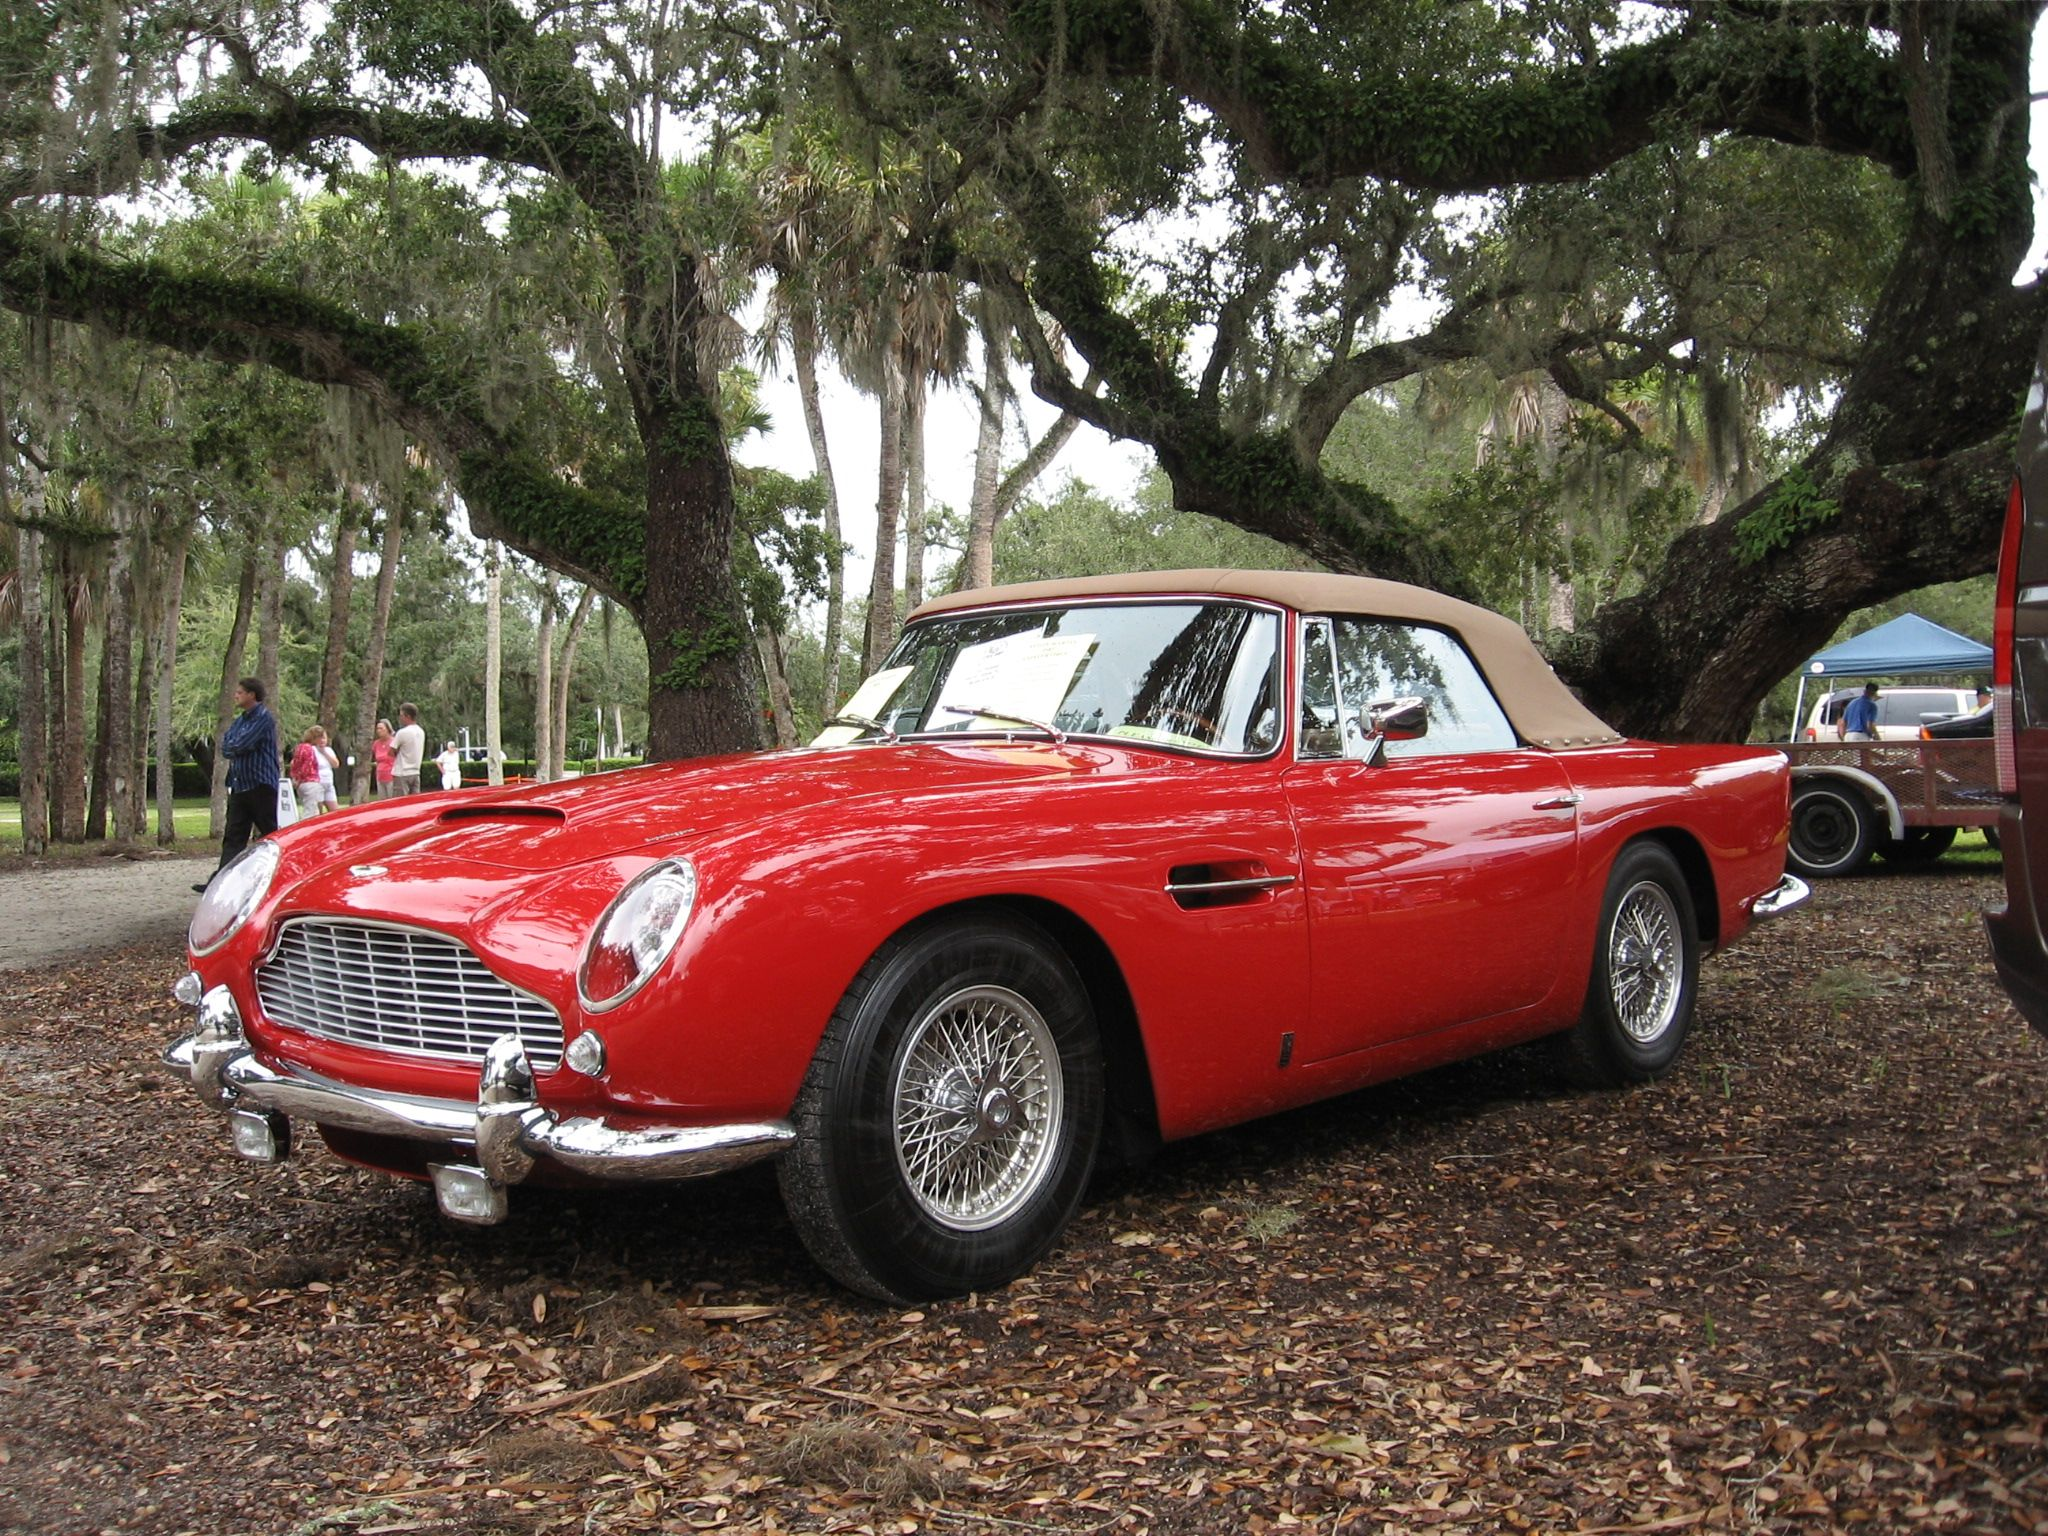 1964 Aston Martin Db5 With Its Top Covered Aston Martin Db5 Aston Martin Classic Cars